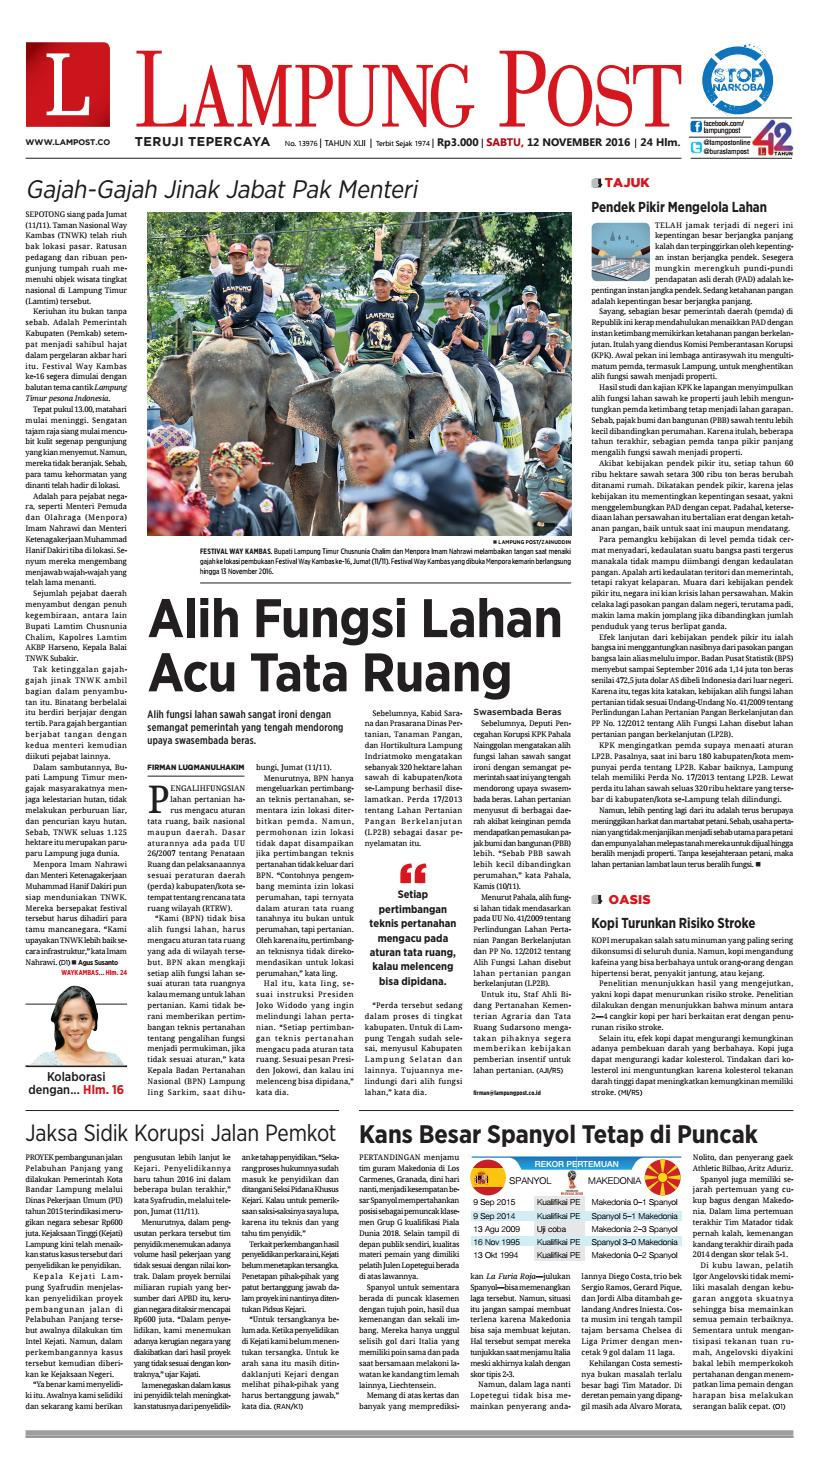 Lampung Post Sabtu 12 November 2016 By Issuu Tcash Vaganza 28 Produk Ukm Bumn Topi Batik